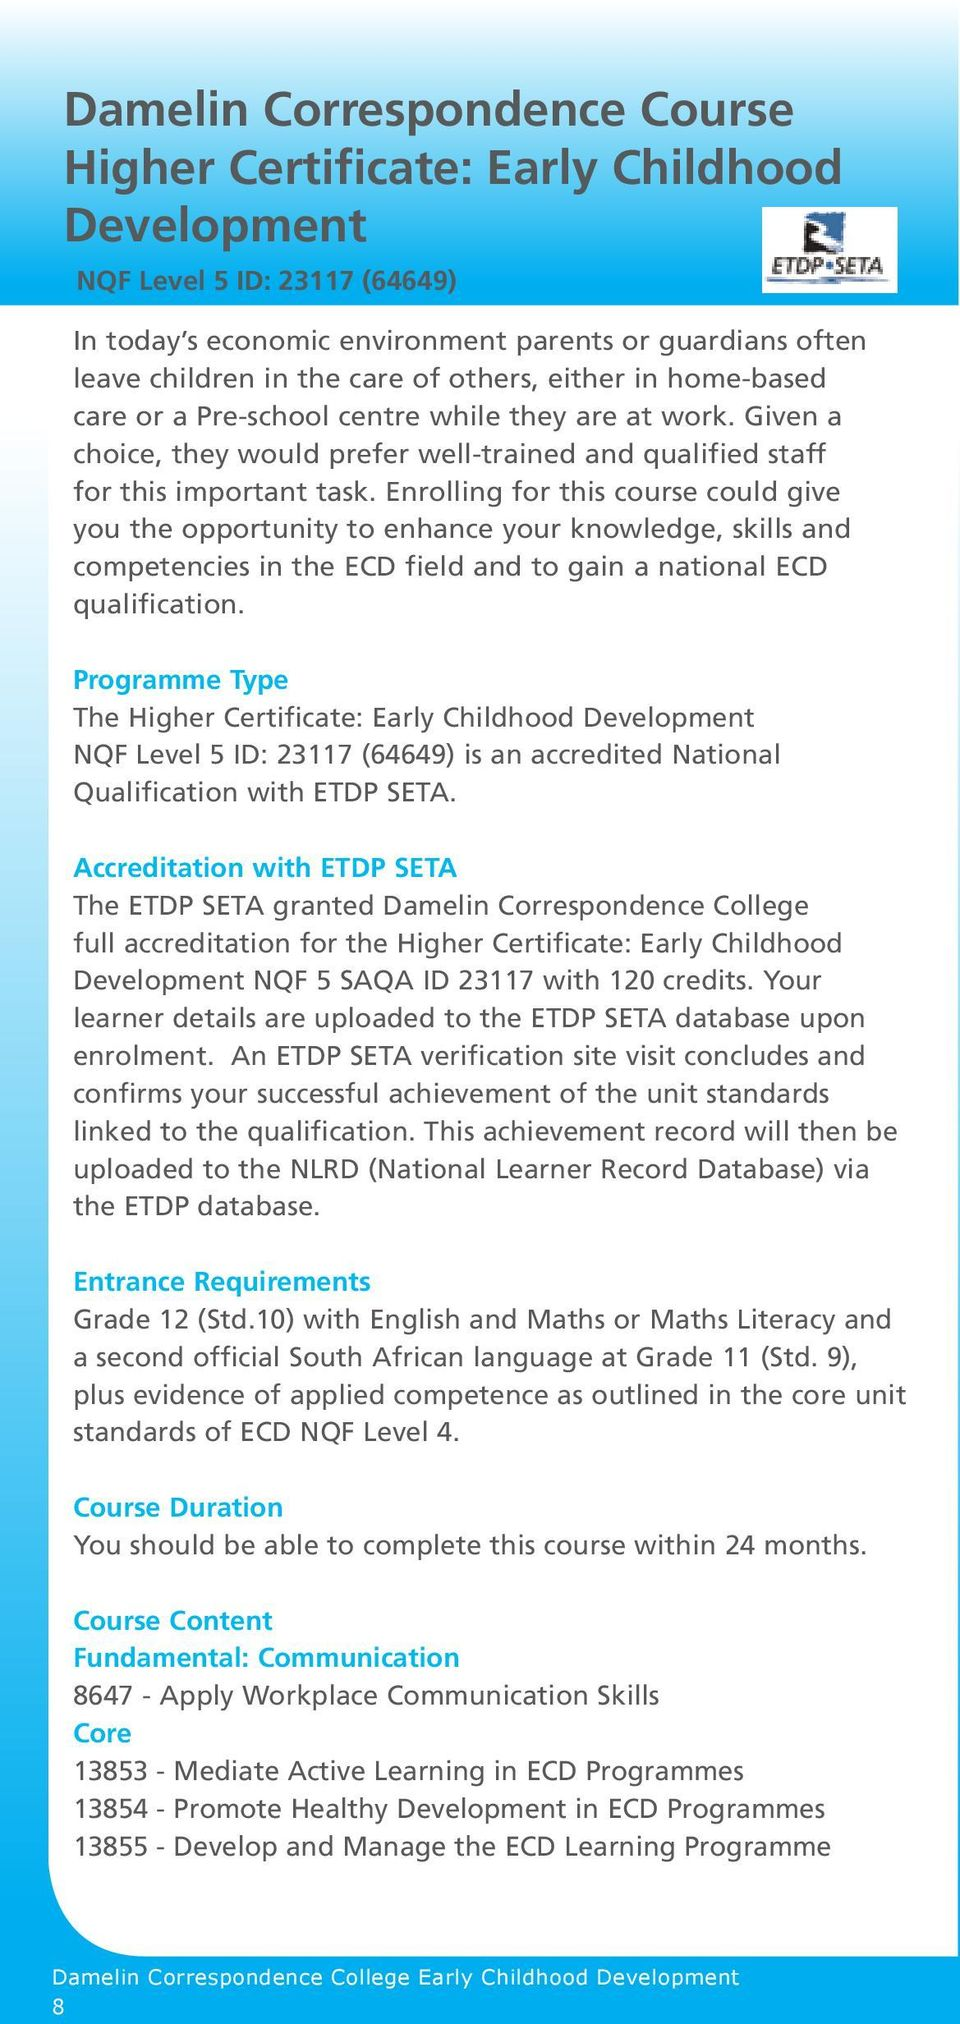 Enrolling for this course could give you the opportunity to enhance your knowledge, skills and competencies in the ECD field and to gain a national ECD qualification.